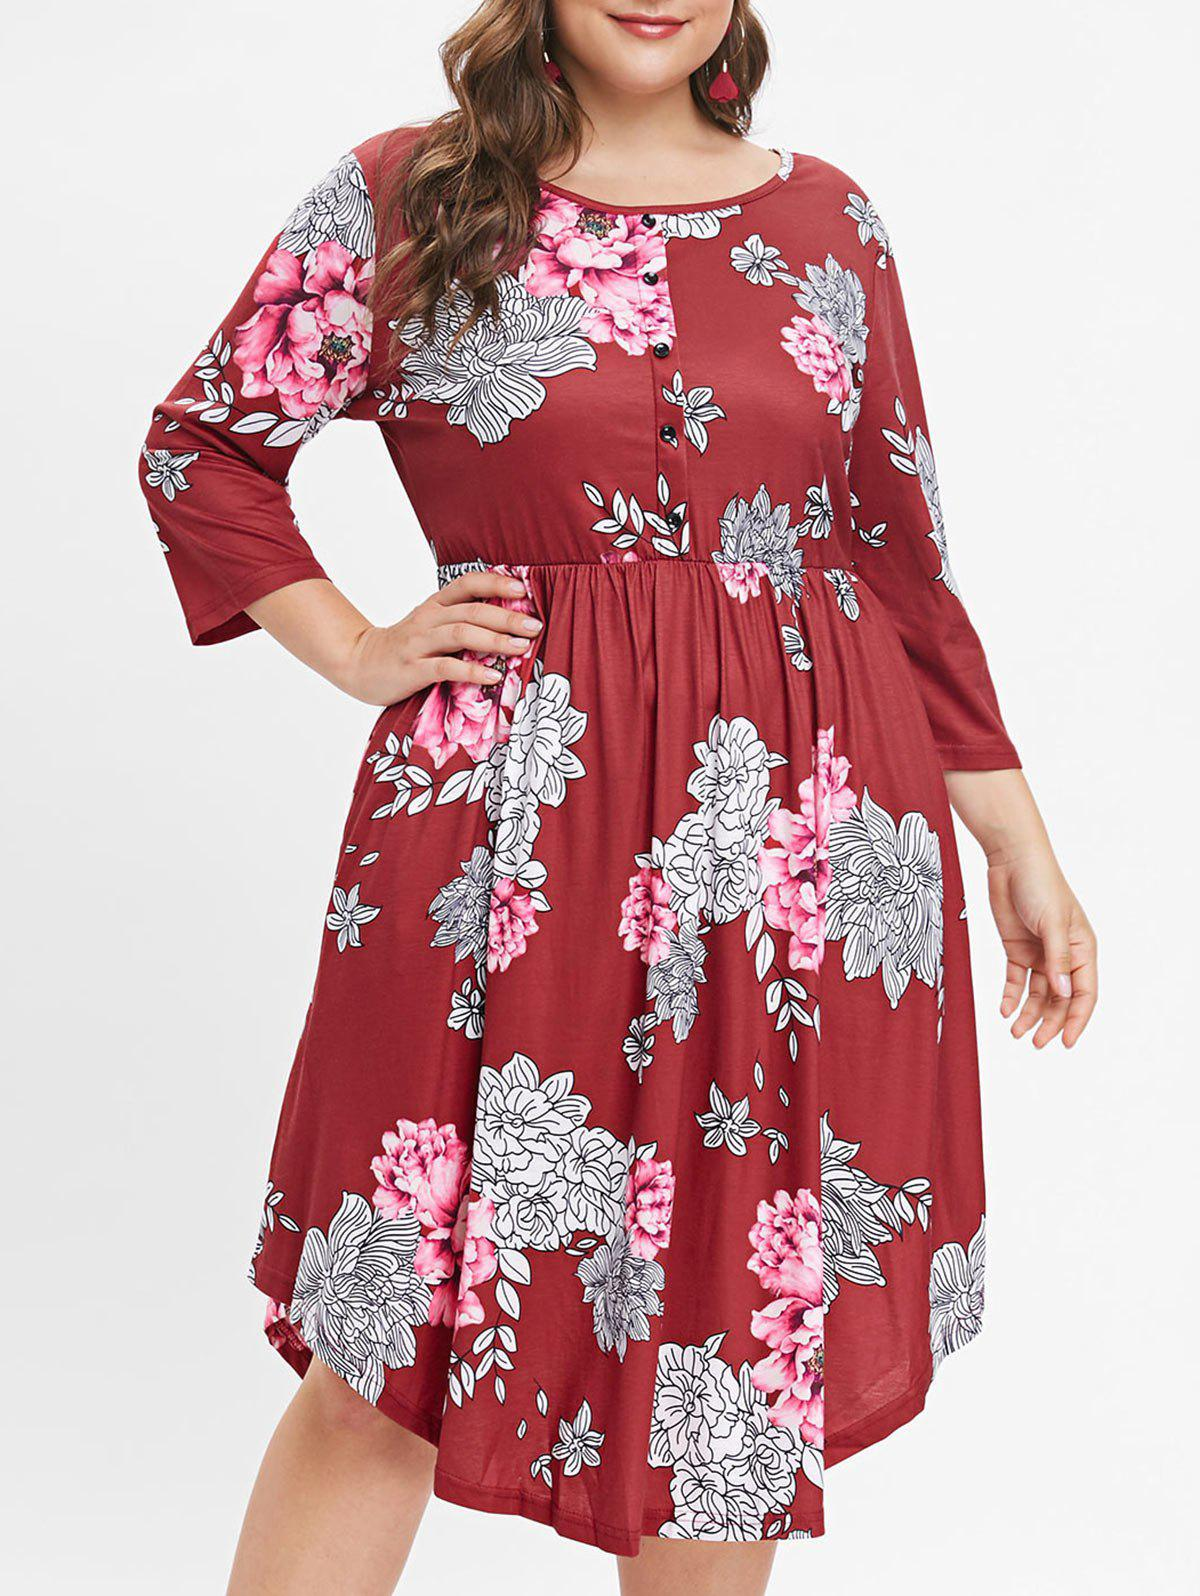 Chic Plus Size Floral Print Button Detail A Line Dress